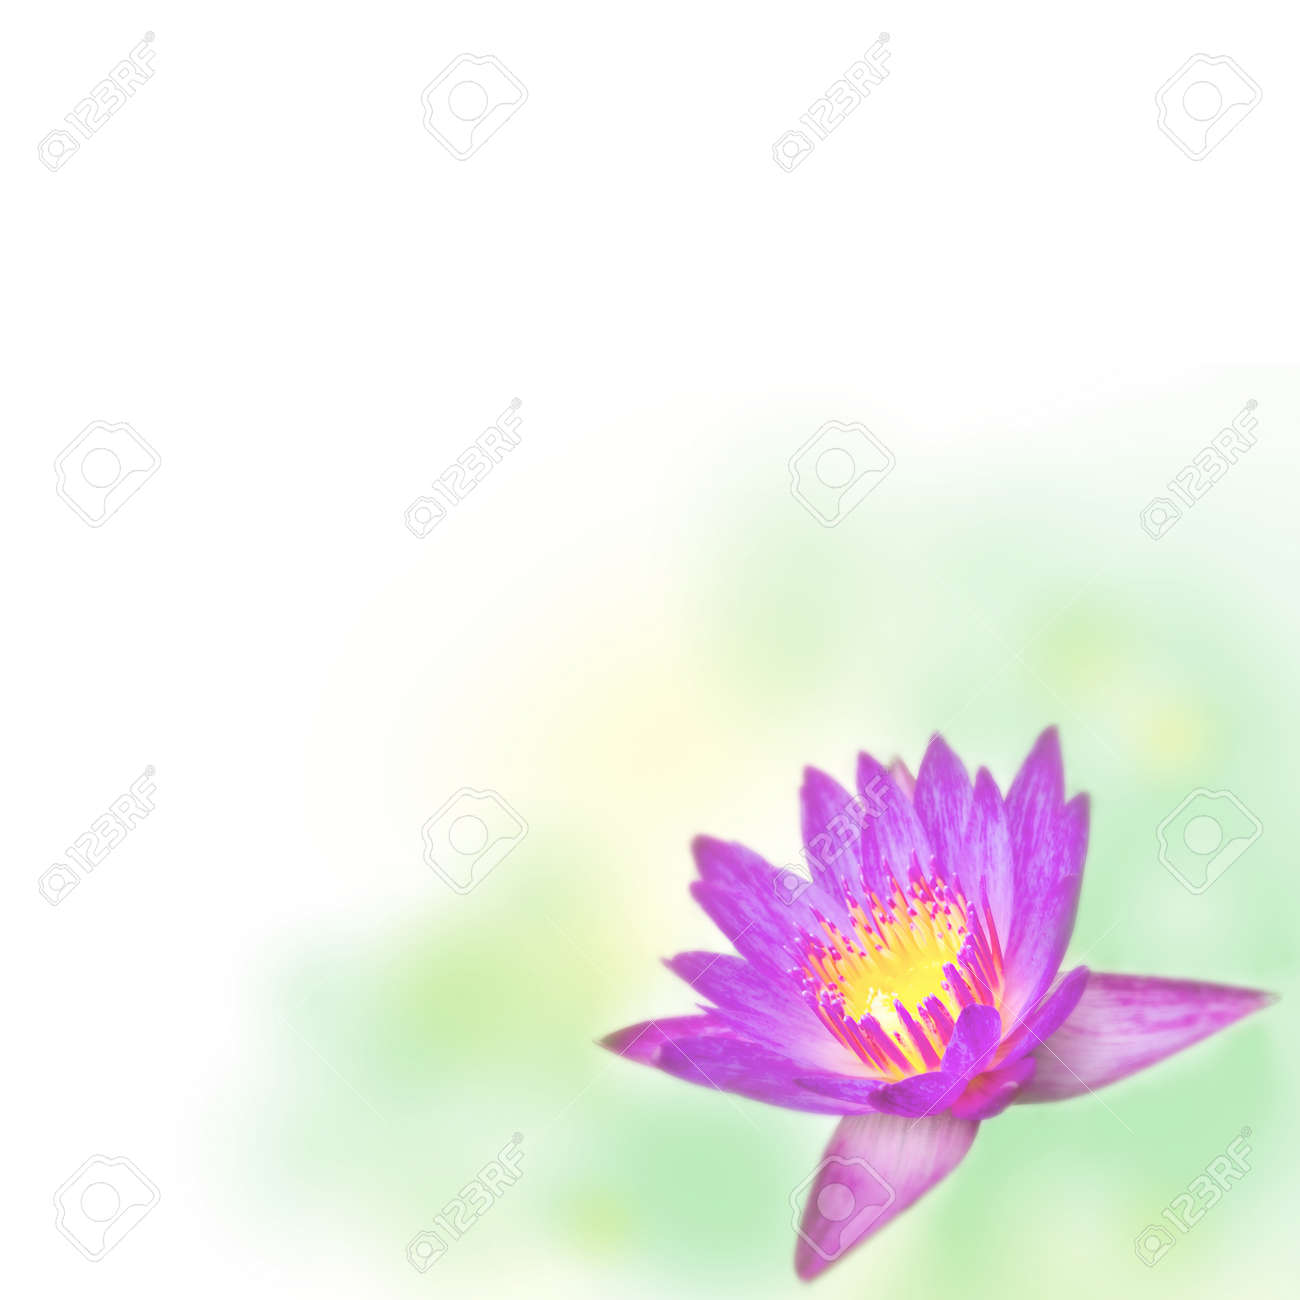 Lotus Flower Design Expandable Blank Template Border Stock Photo